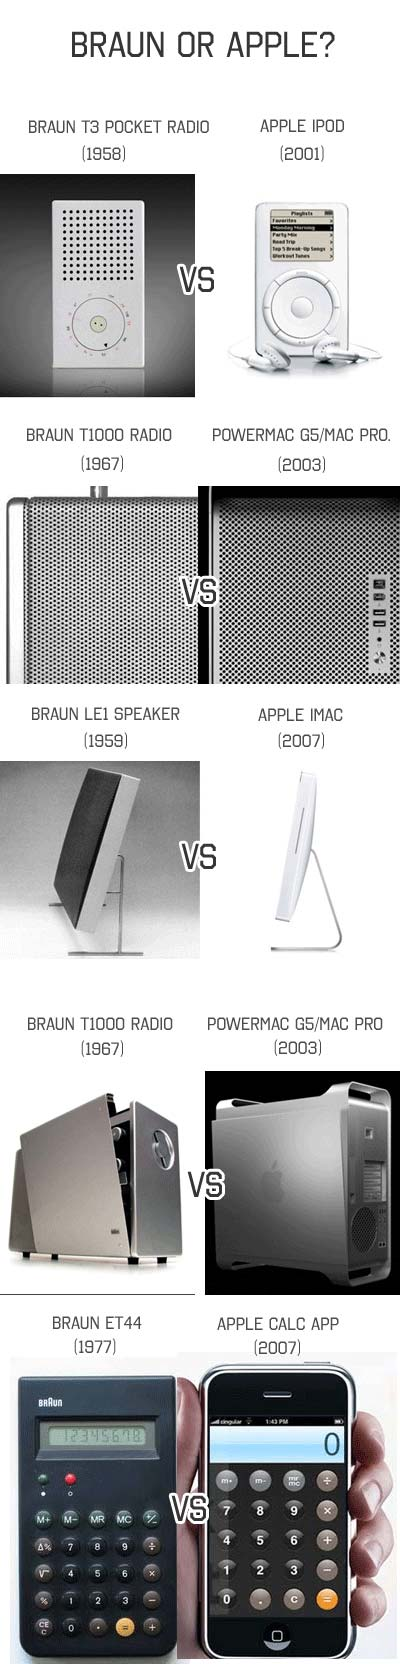 Actualidad Informtica. Los diseos de Apple inspirados en los de Braun. Rafael Barzanallana. UMU